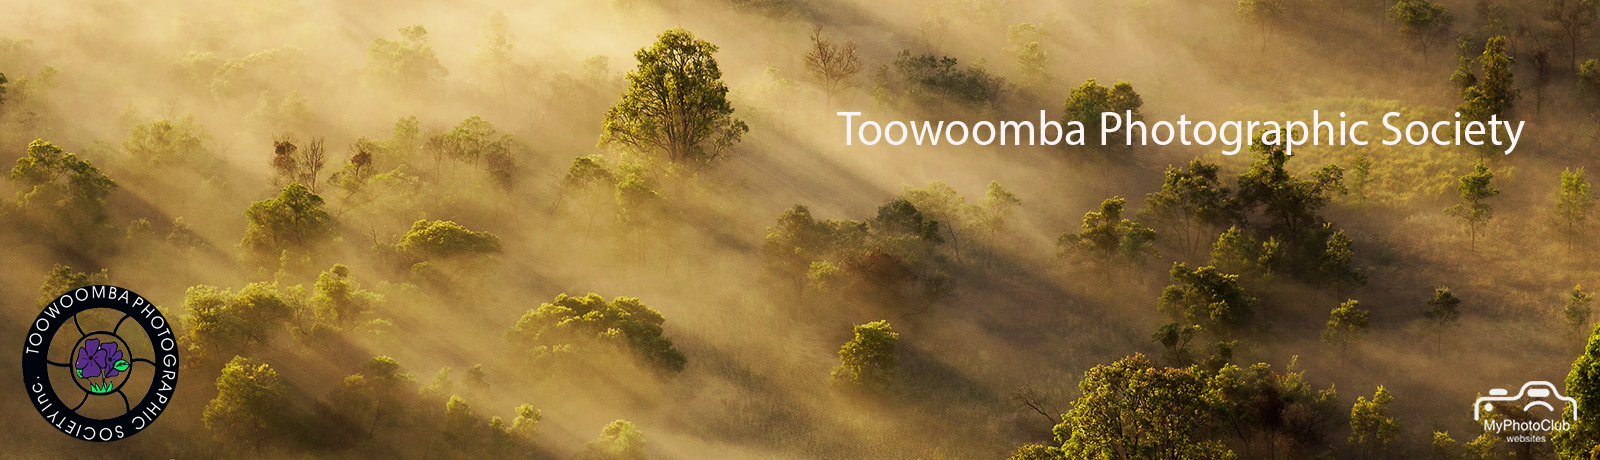 Toowoomba Photographic Society